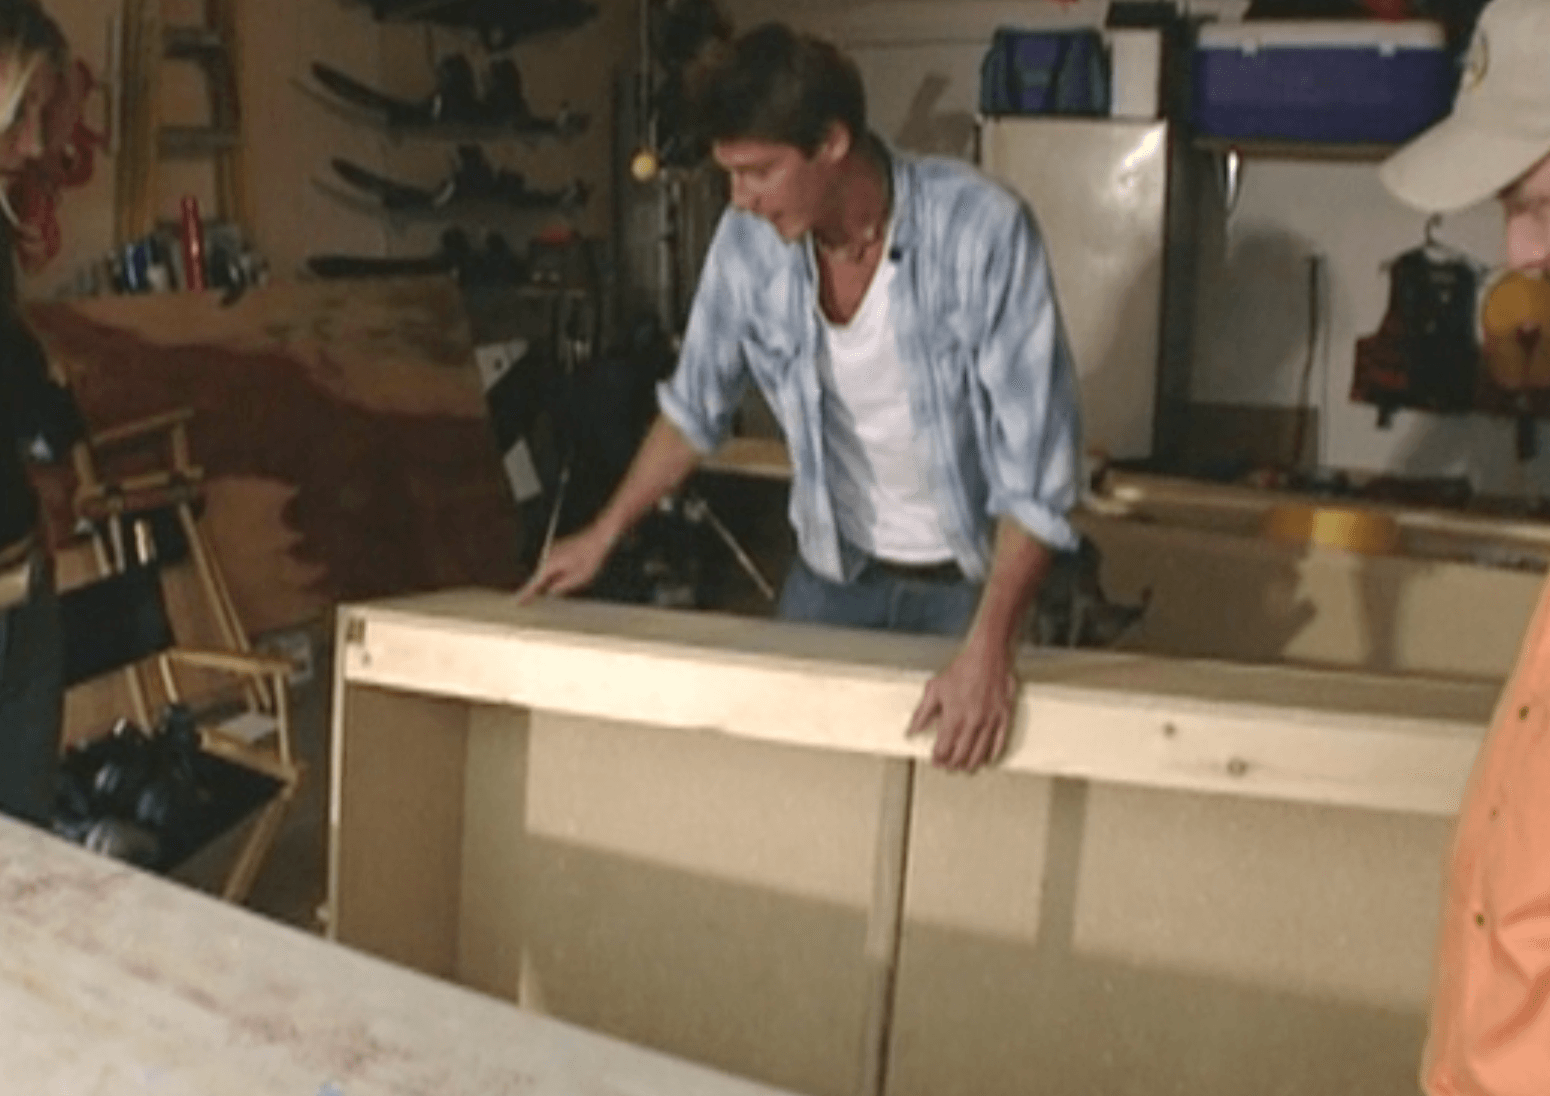 Ty Pennington on trading spaces